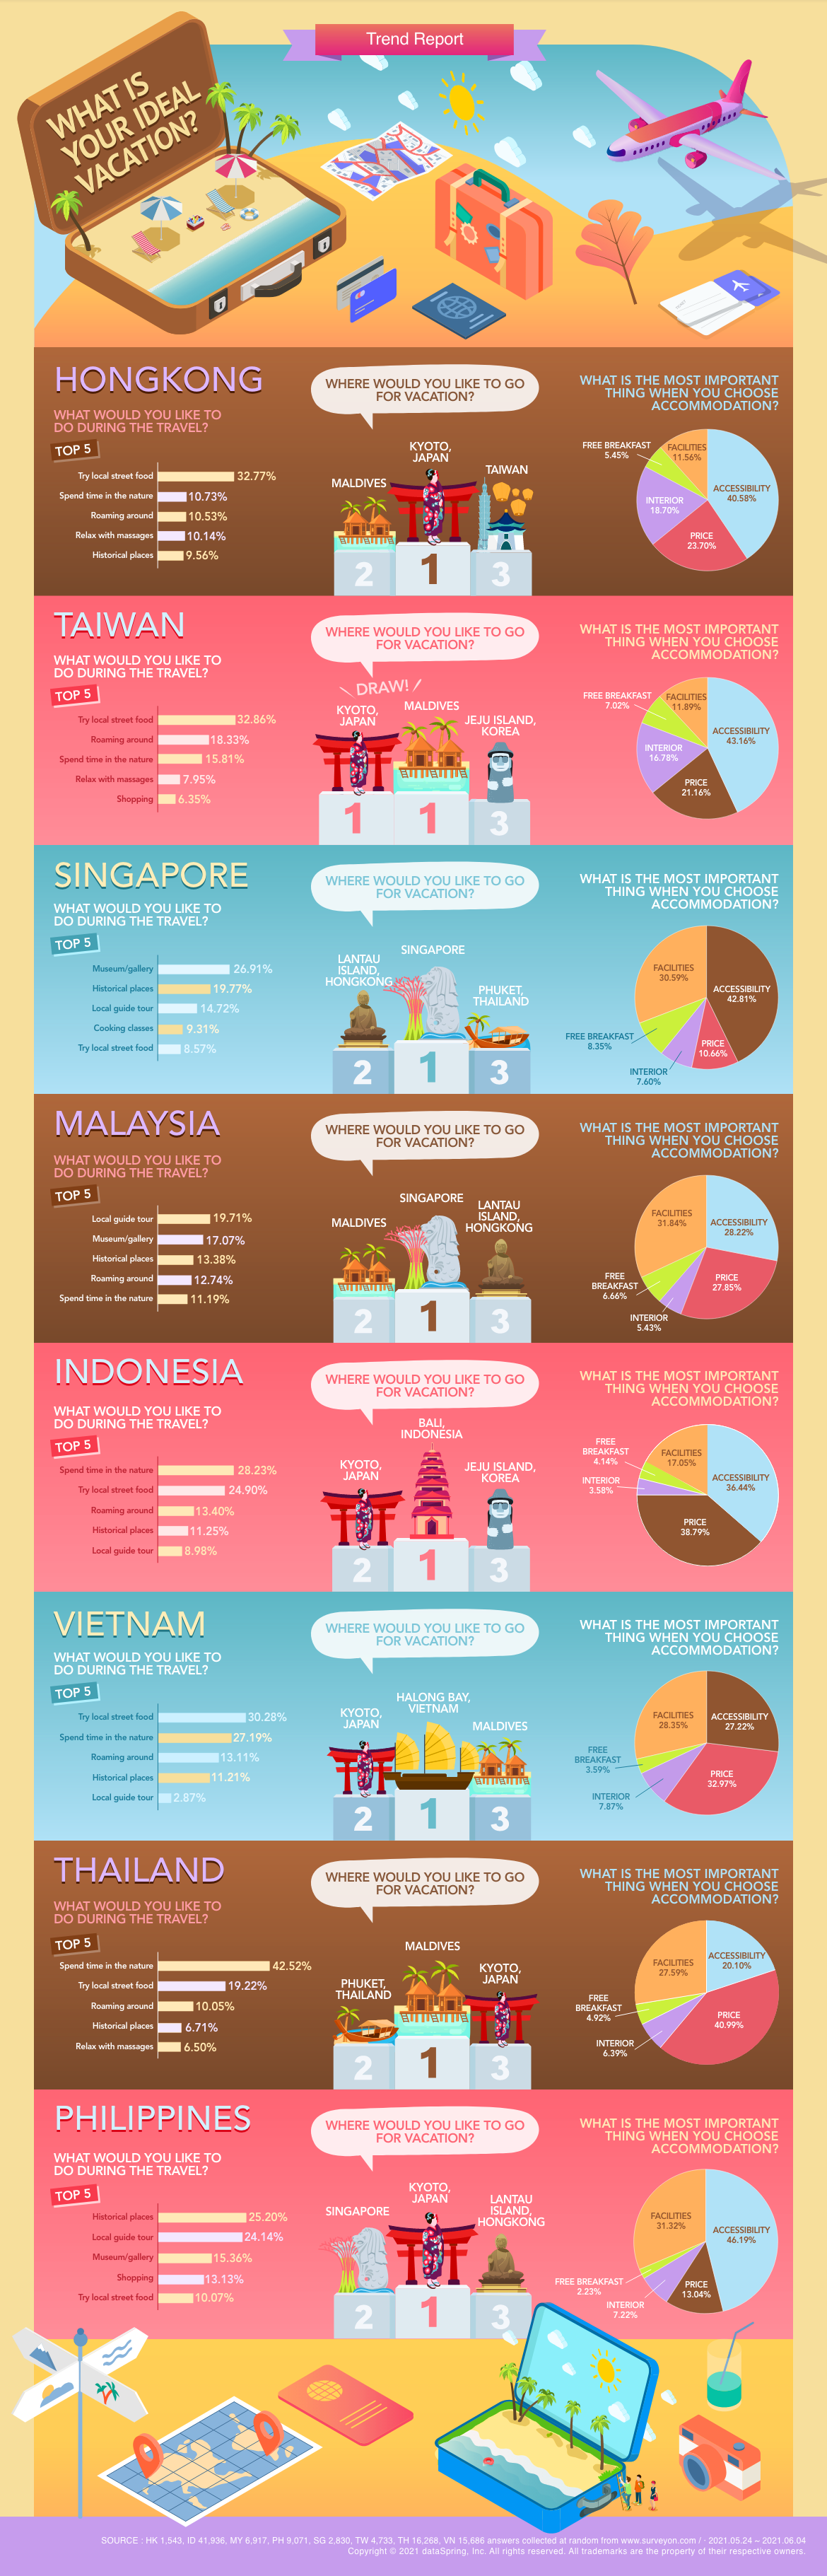 2021-Trend-report-what-is-your-ideal-vacation